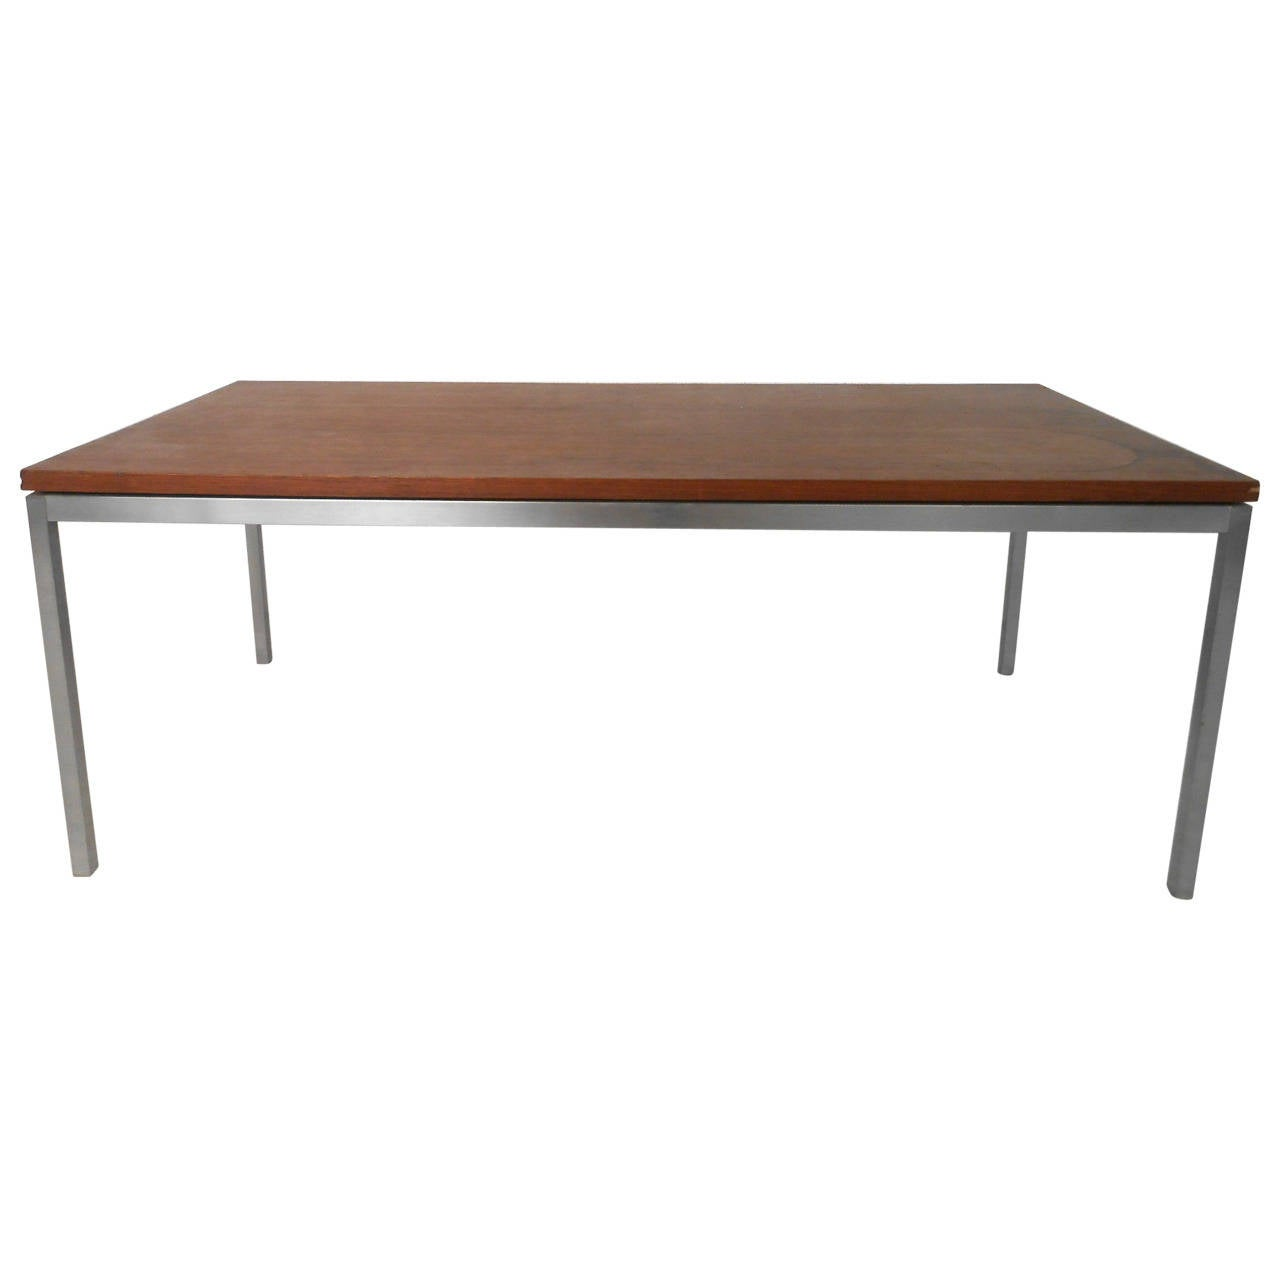 Mid century modern knoll associates coffee table at 1stdibs for Knoll and associates